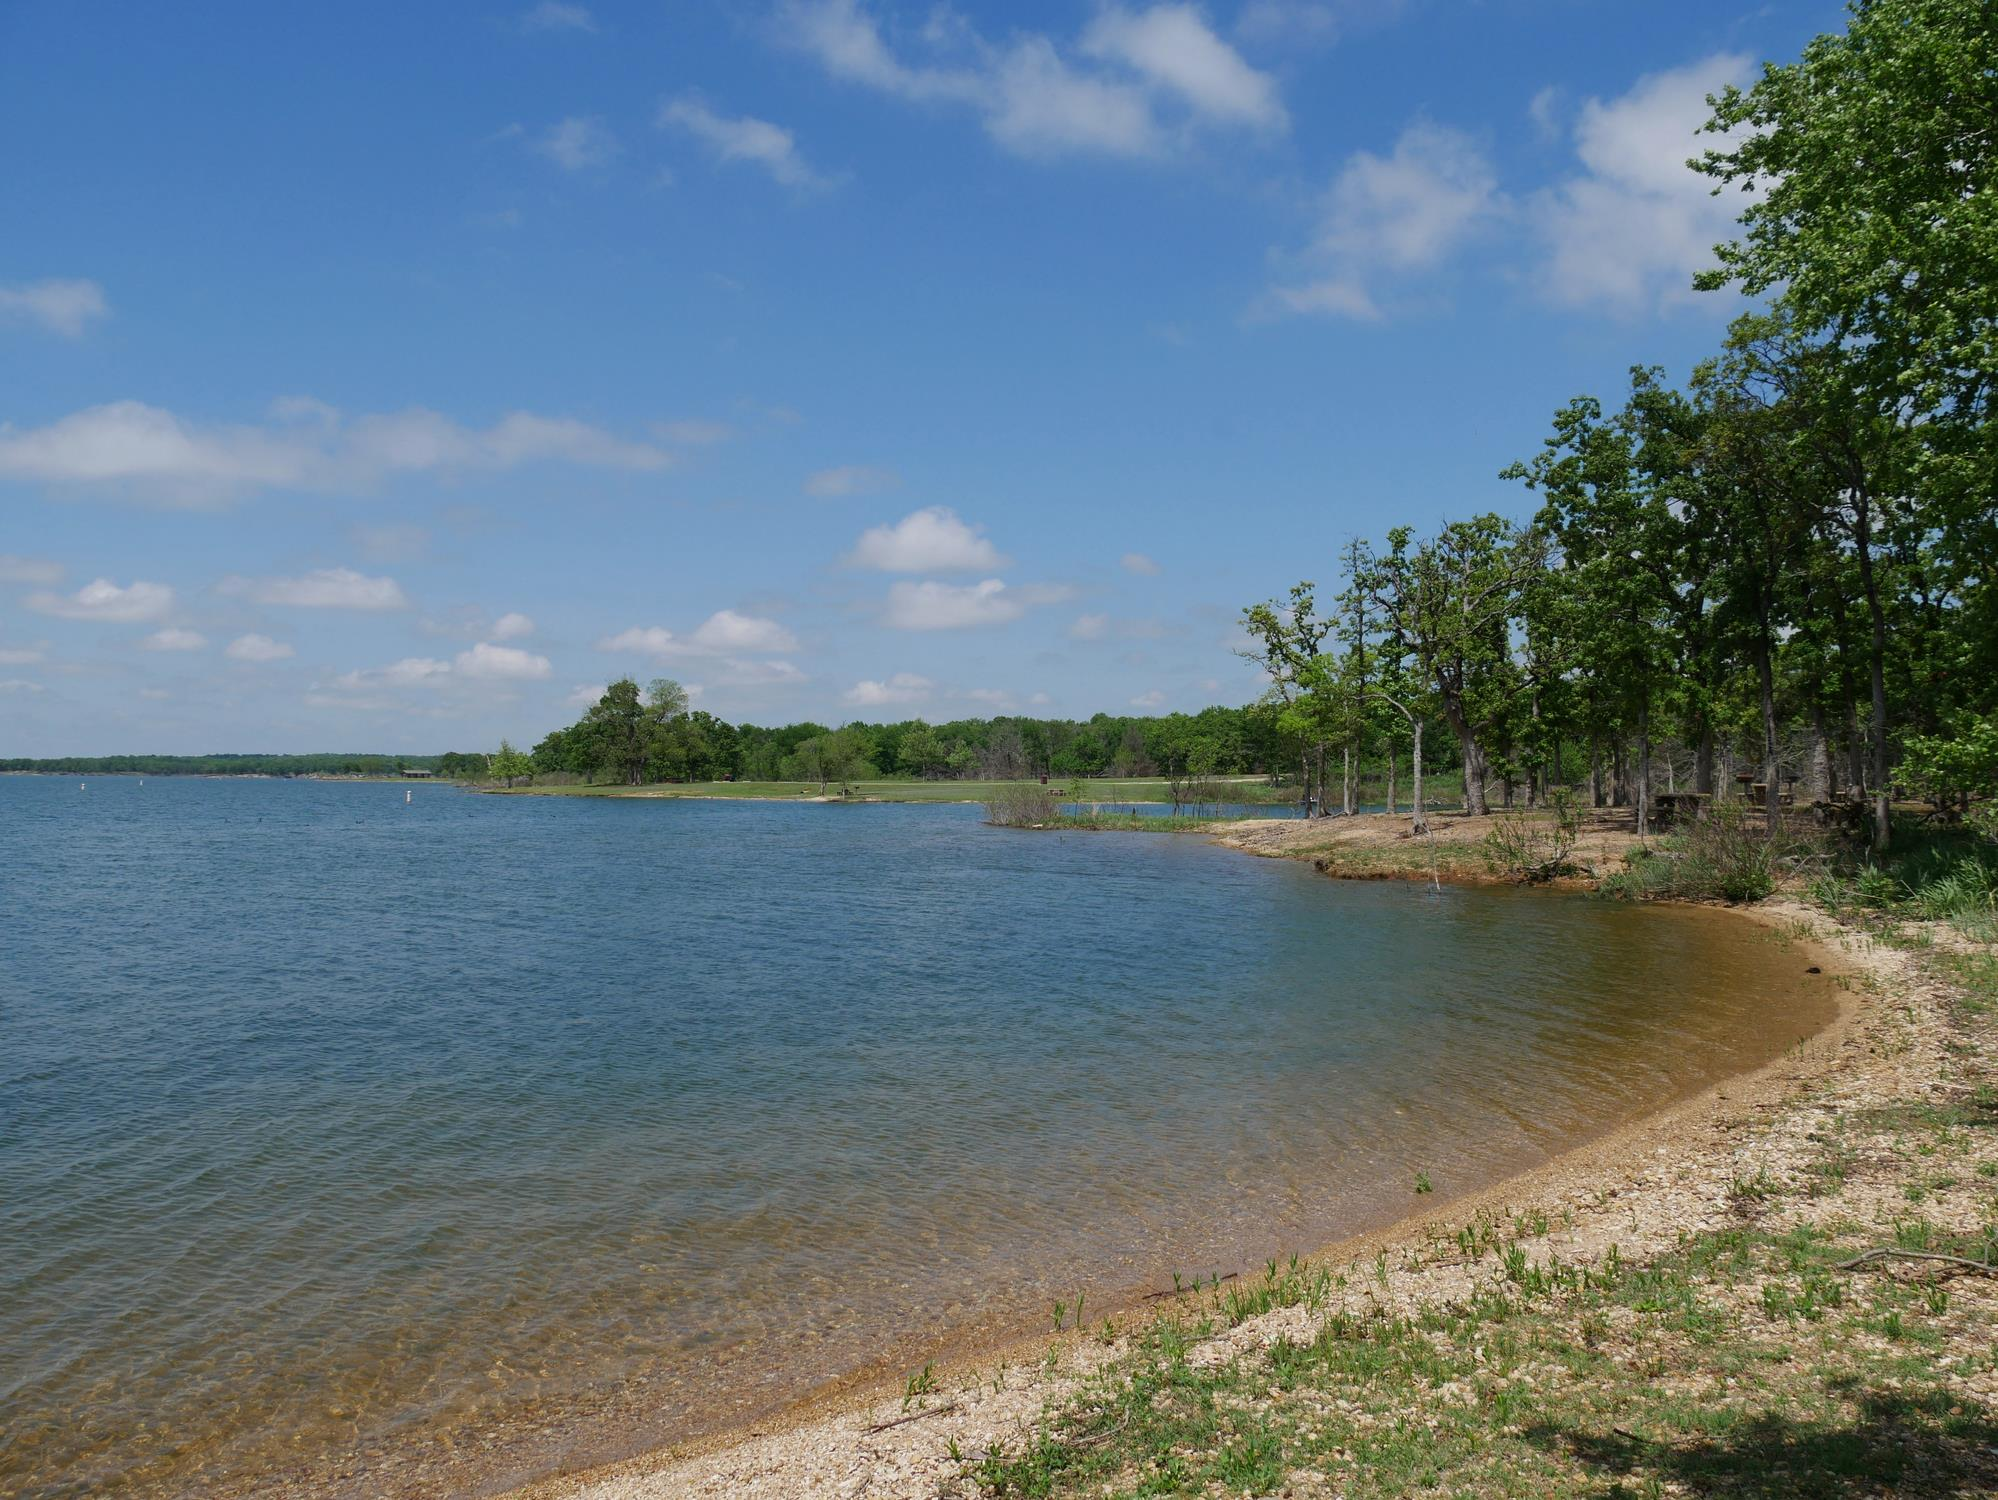 lake Arbuckle